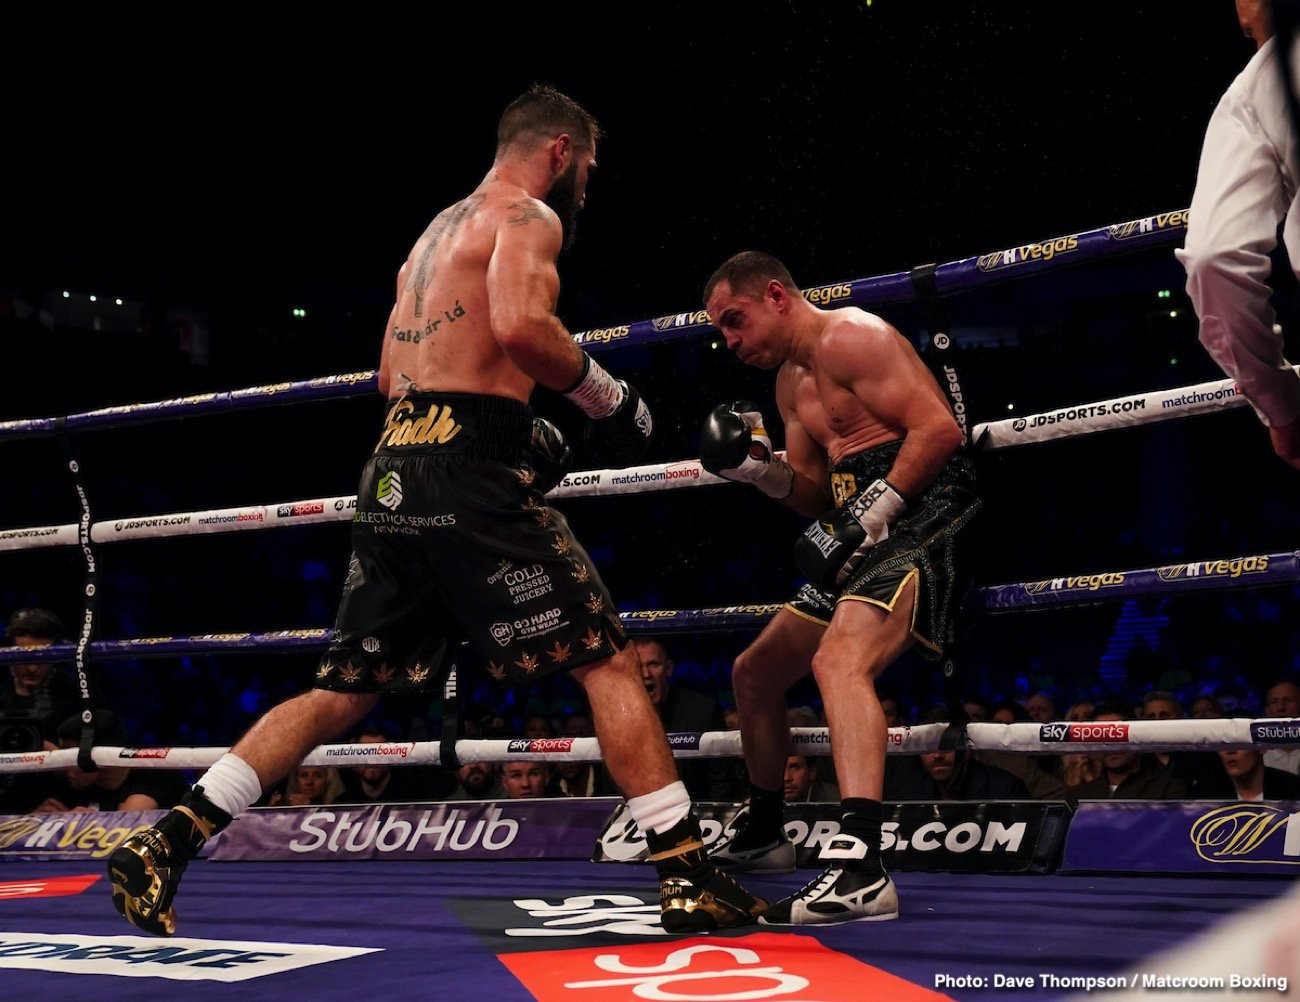 Hughie Fury - In a masterclass performance, super featherweight contender Jono Carroll (18-1-1, 4 KOs)  embarrassed former 122-lb champion Scott Quigg (35-3-2, 26 KOs) in totally schooling him in scoring an 11th round retirement stoppage on Saturday night in front of an excited crowd at the Manchester Arena in Manchester, England.